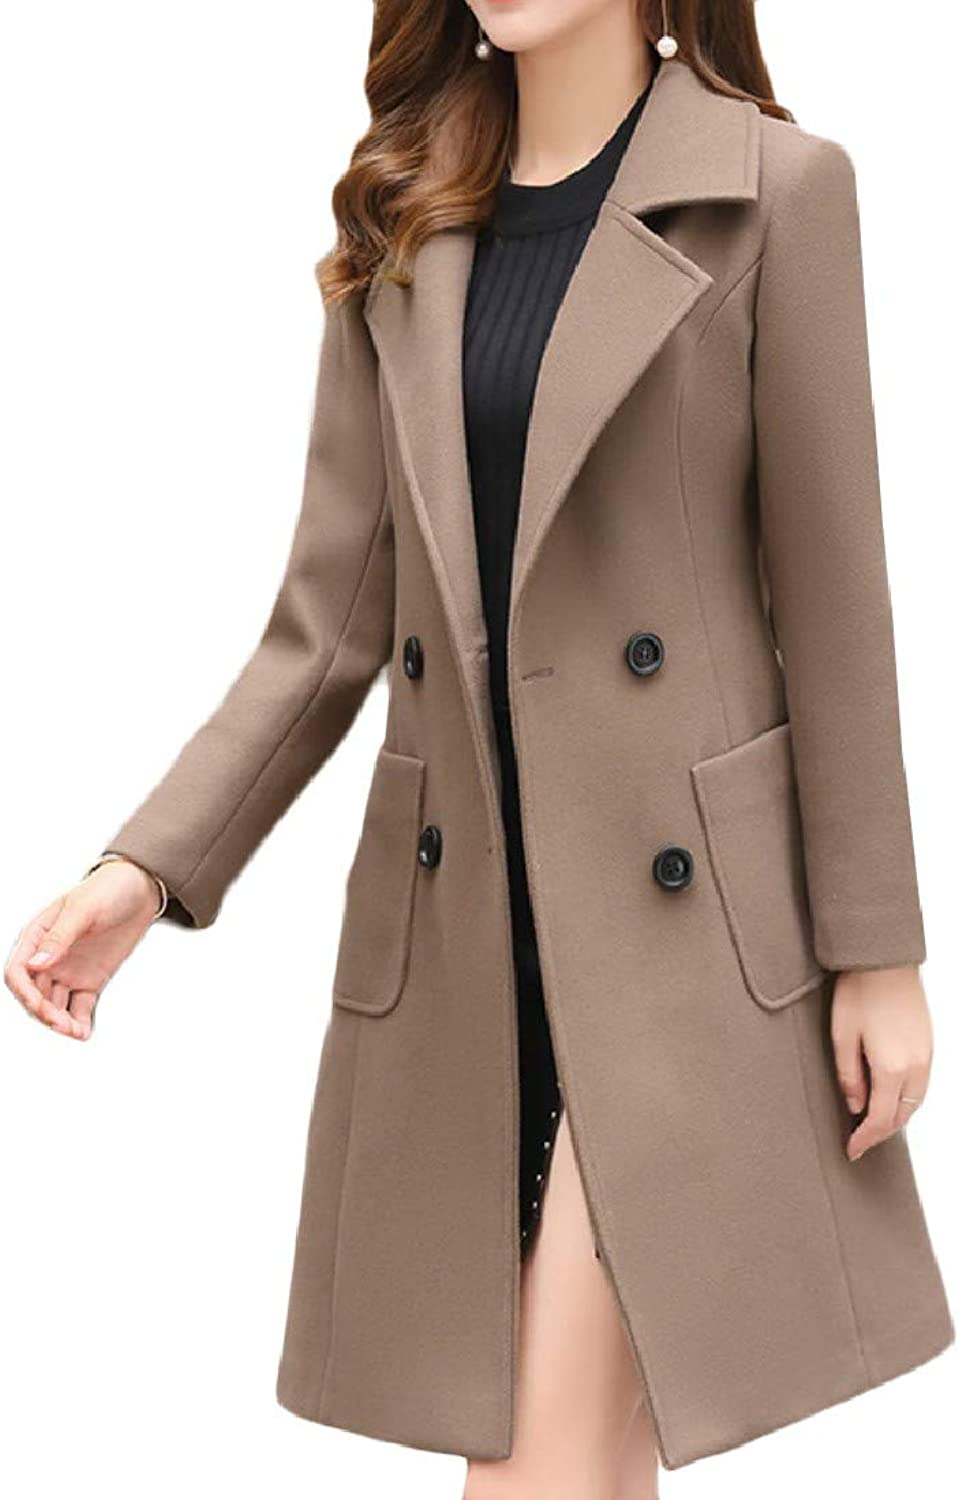 TaoNice Womens MidLong Side Waist Pockets Notched Collar Peacoat